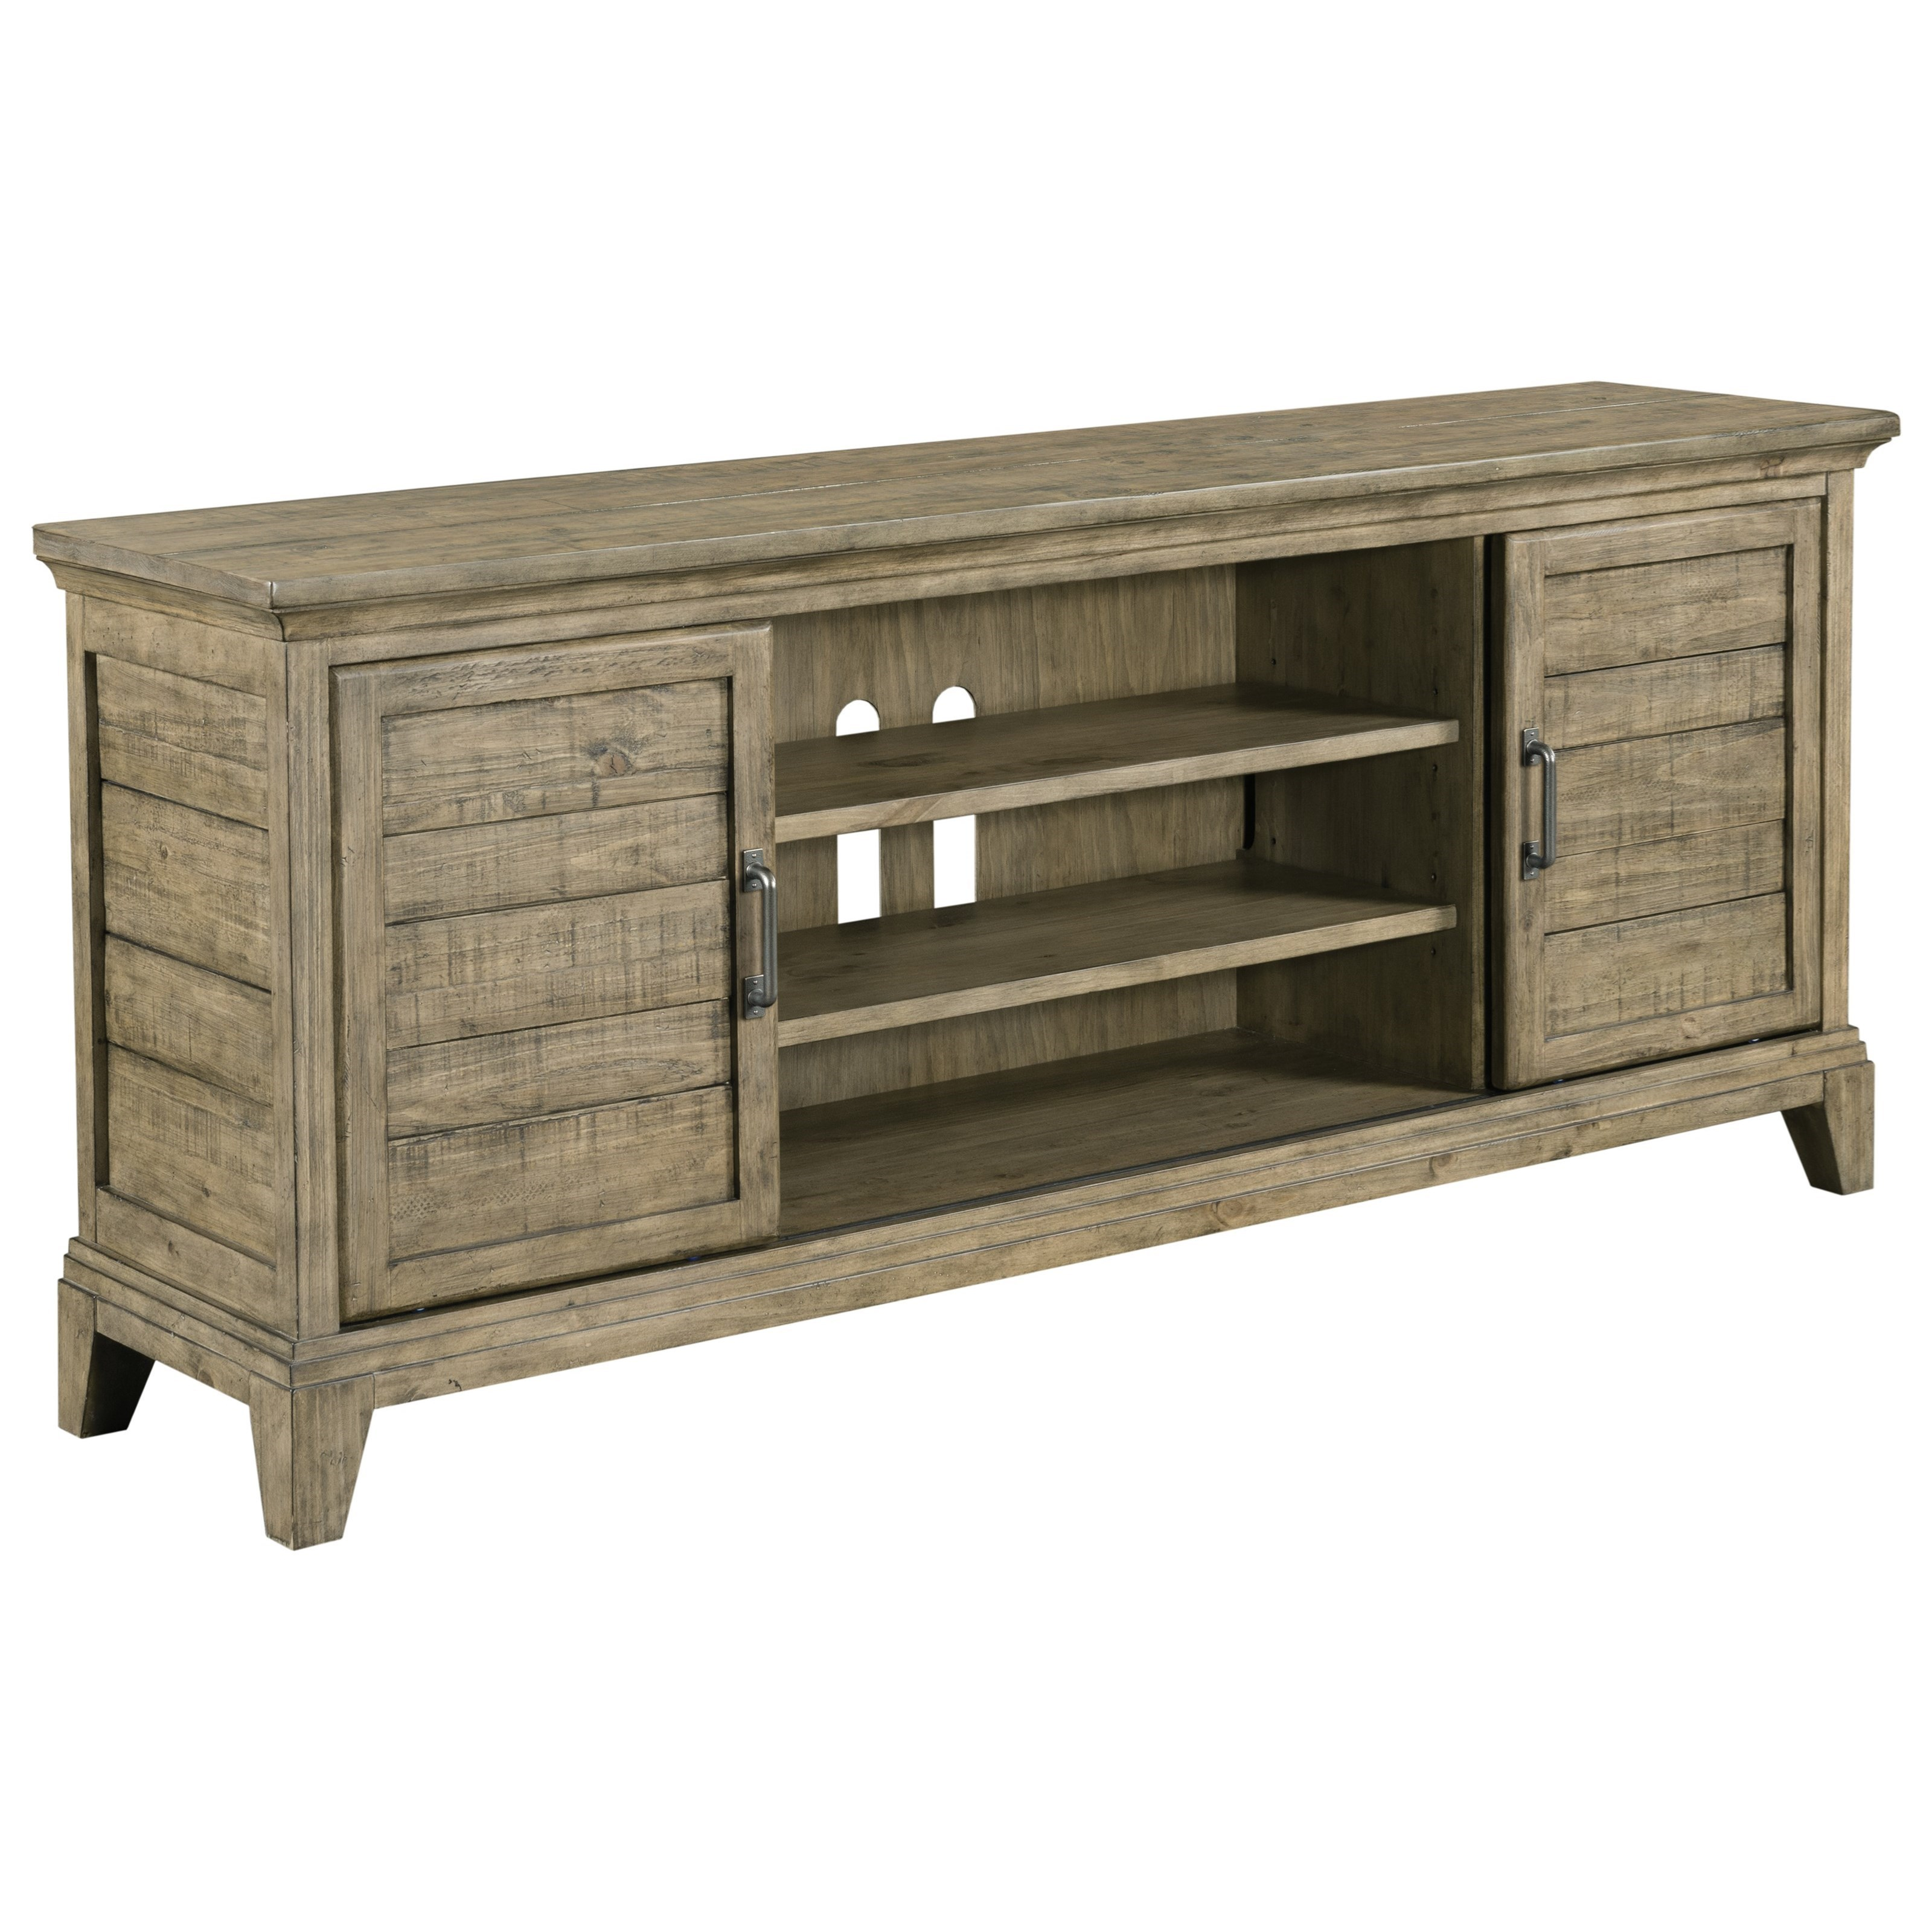 Kincaid Furniture Plank Road Arden Entertainment Console With Sliding Doors  And Built In Electrical Outlet   Becker Furniture World   TV Stands